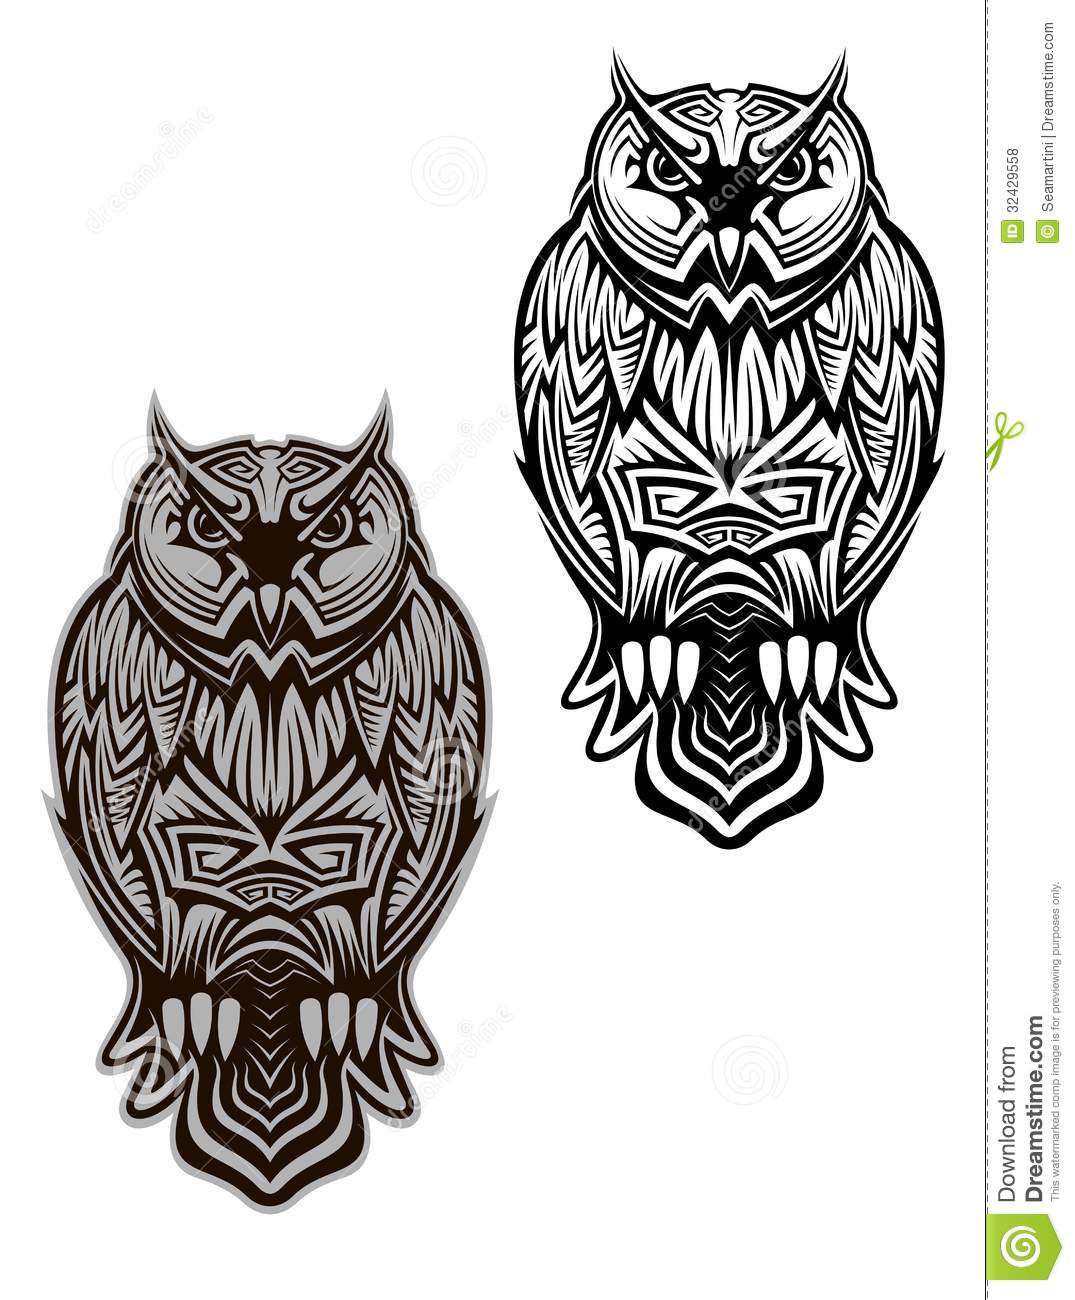 Owl bird tattoo royalty free stock photos image 32429558 for Tribal owl tattoo